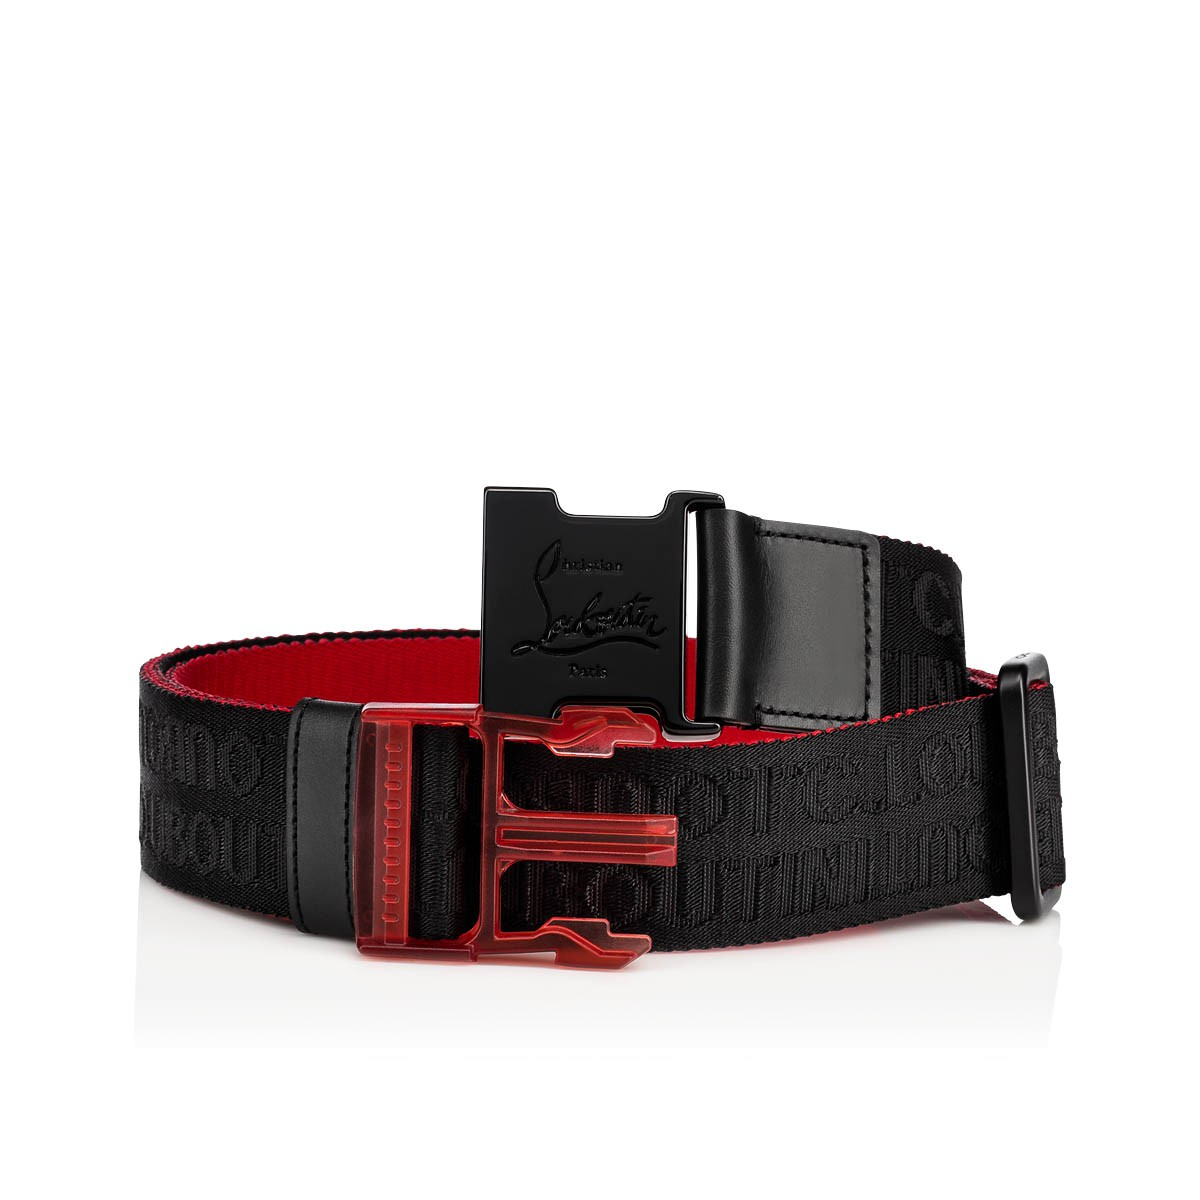 Belt - Loubiclic - Christian Louboutin